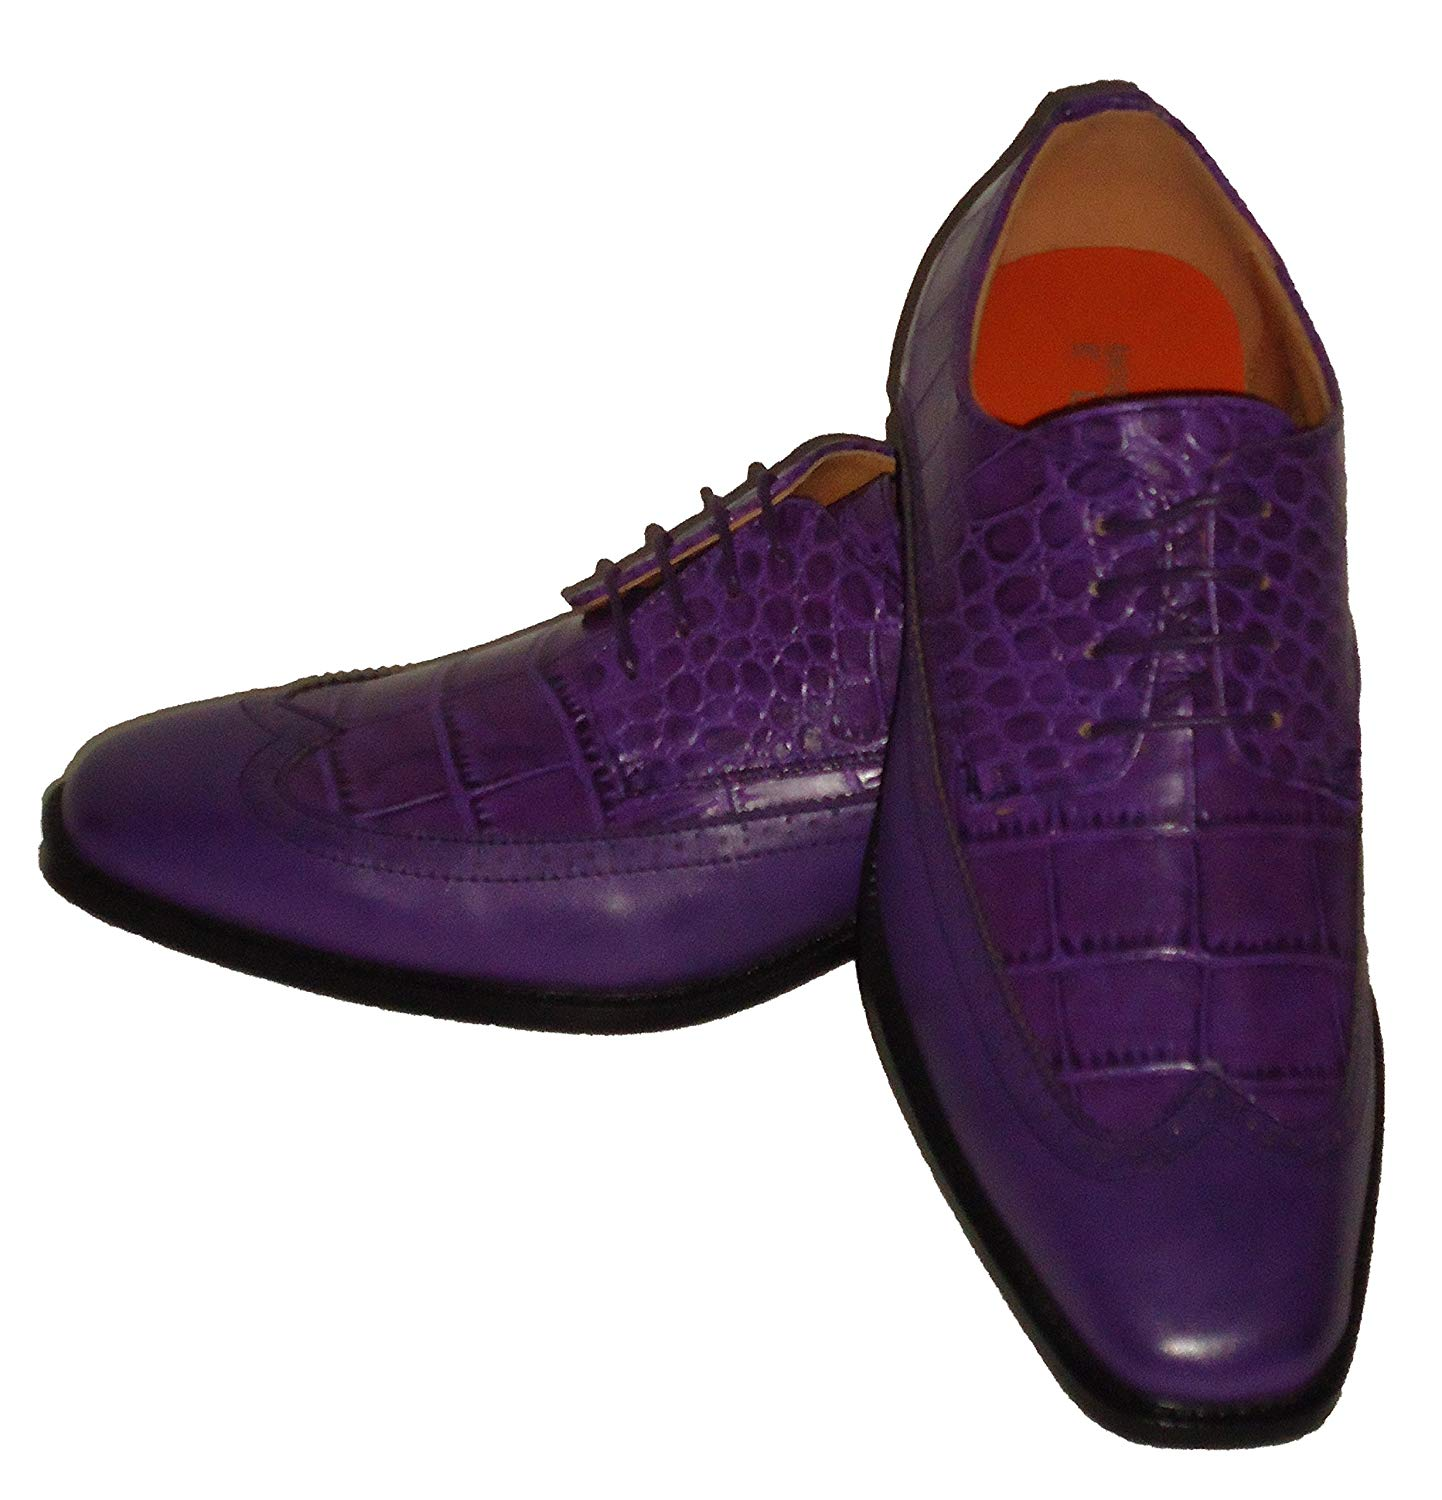 9832e2e59a3d40 Get Quotations · Antonio Cerrelli 6714 Mens Purple Croc-Look Fashion  Wingtip Dress Shoes